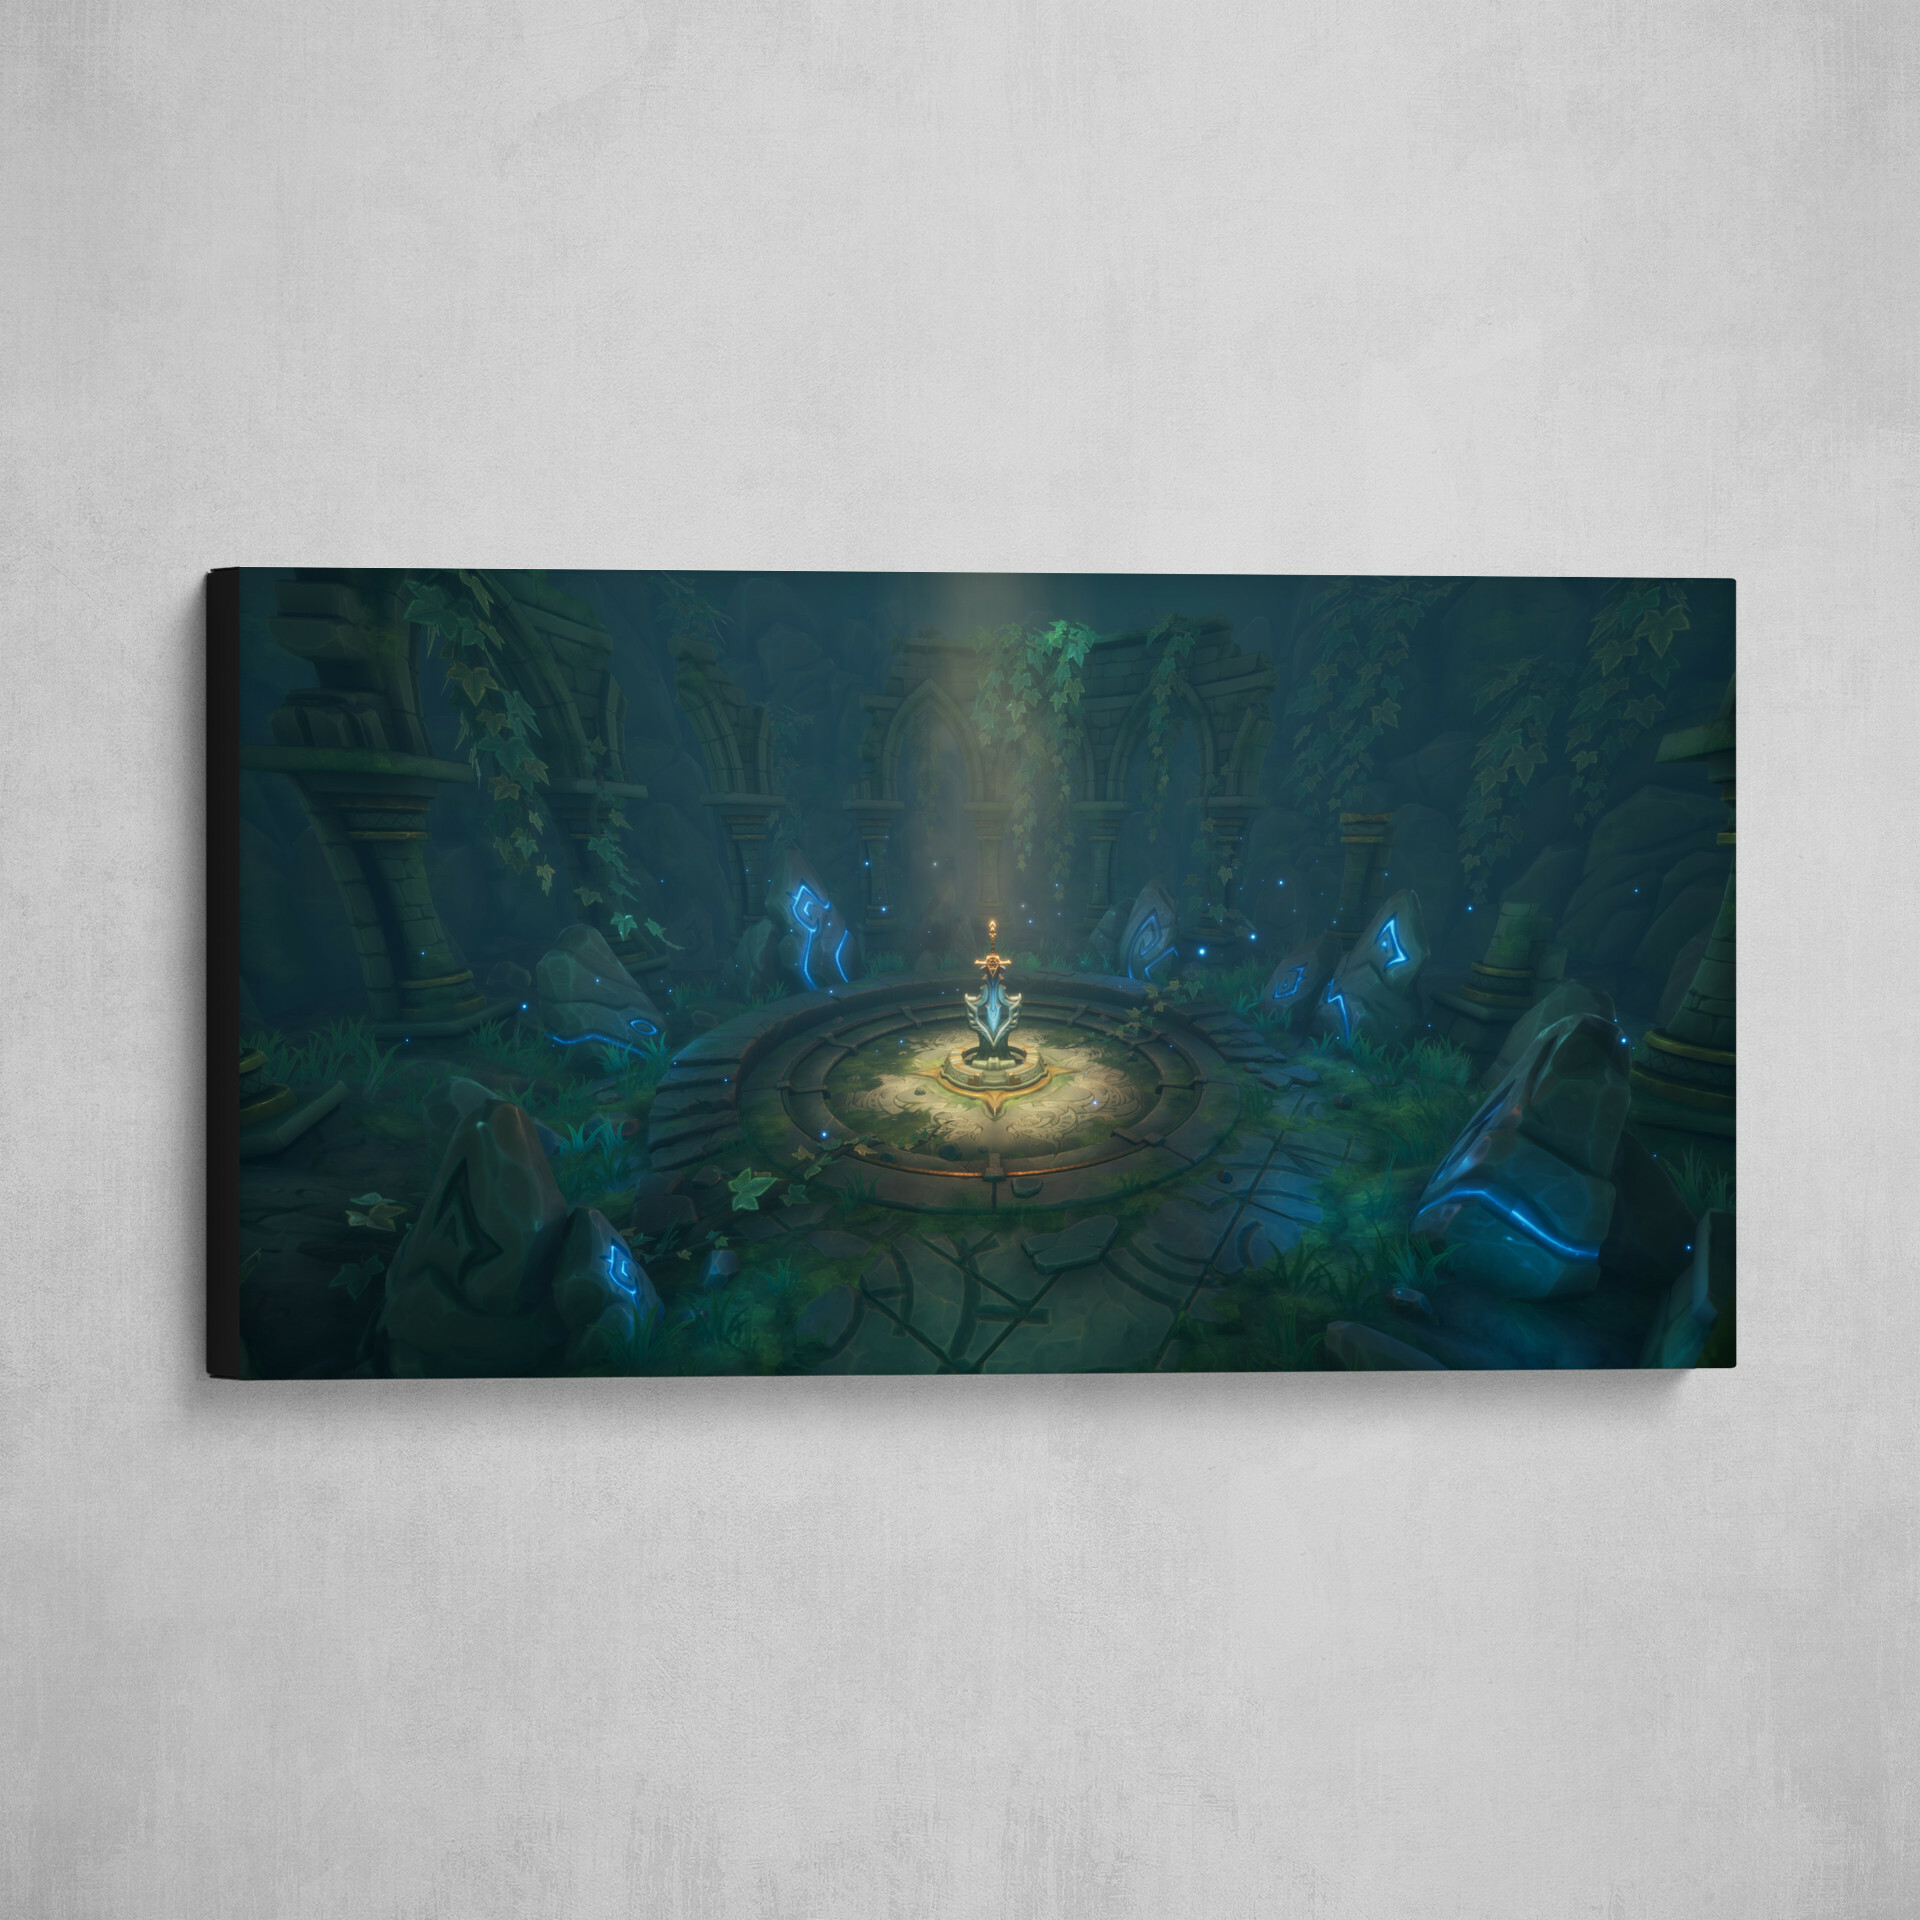 You can now buy an art print of my final submission here : https://www.artstation.com/prints/art_print/E2R7/the-legend-of-king-arthur-artstation-challenge